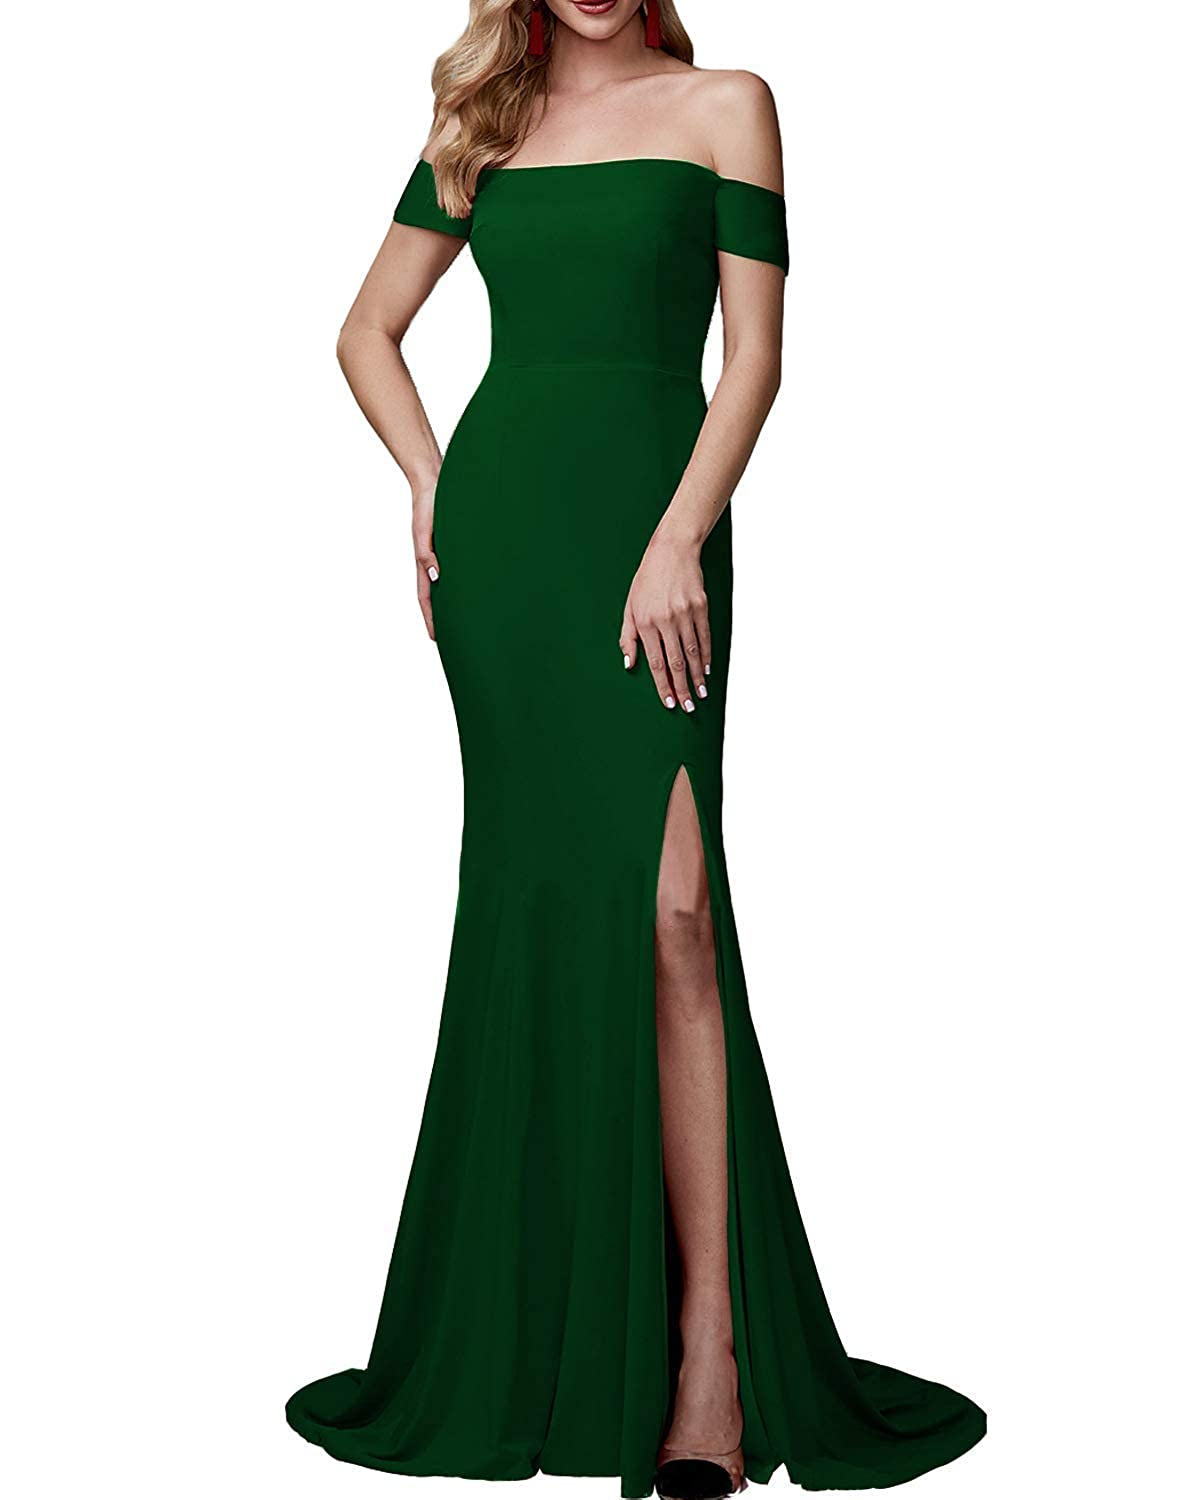 Dark Green Sulidi Women's Mermaid Off Shoulder Prom Dresses with High Slit Bridesmaid Evening Party Gowns C071